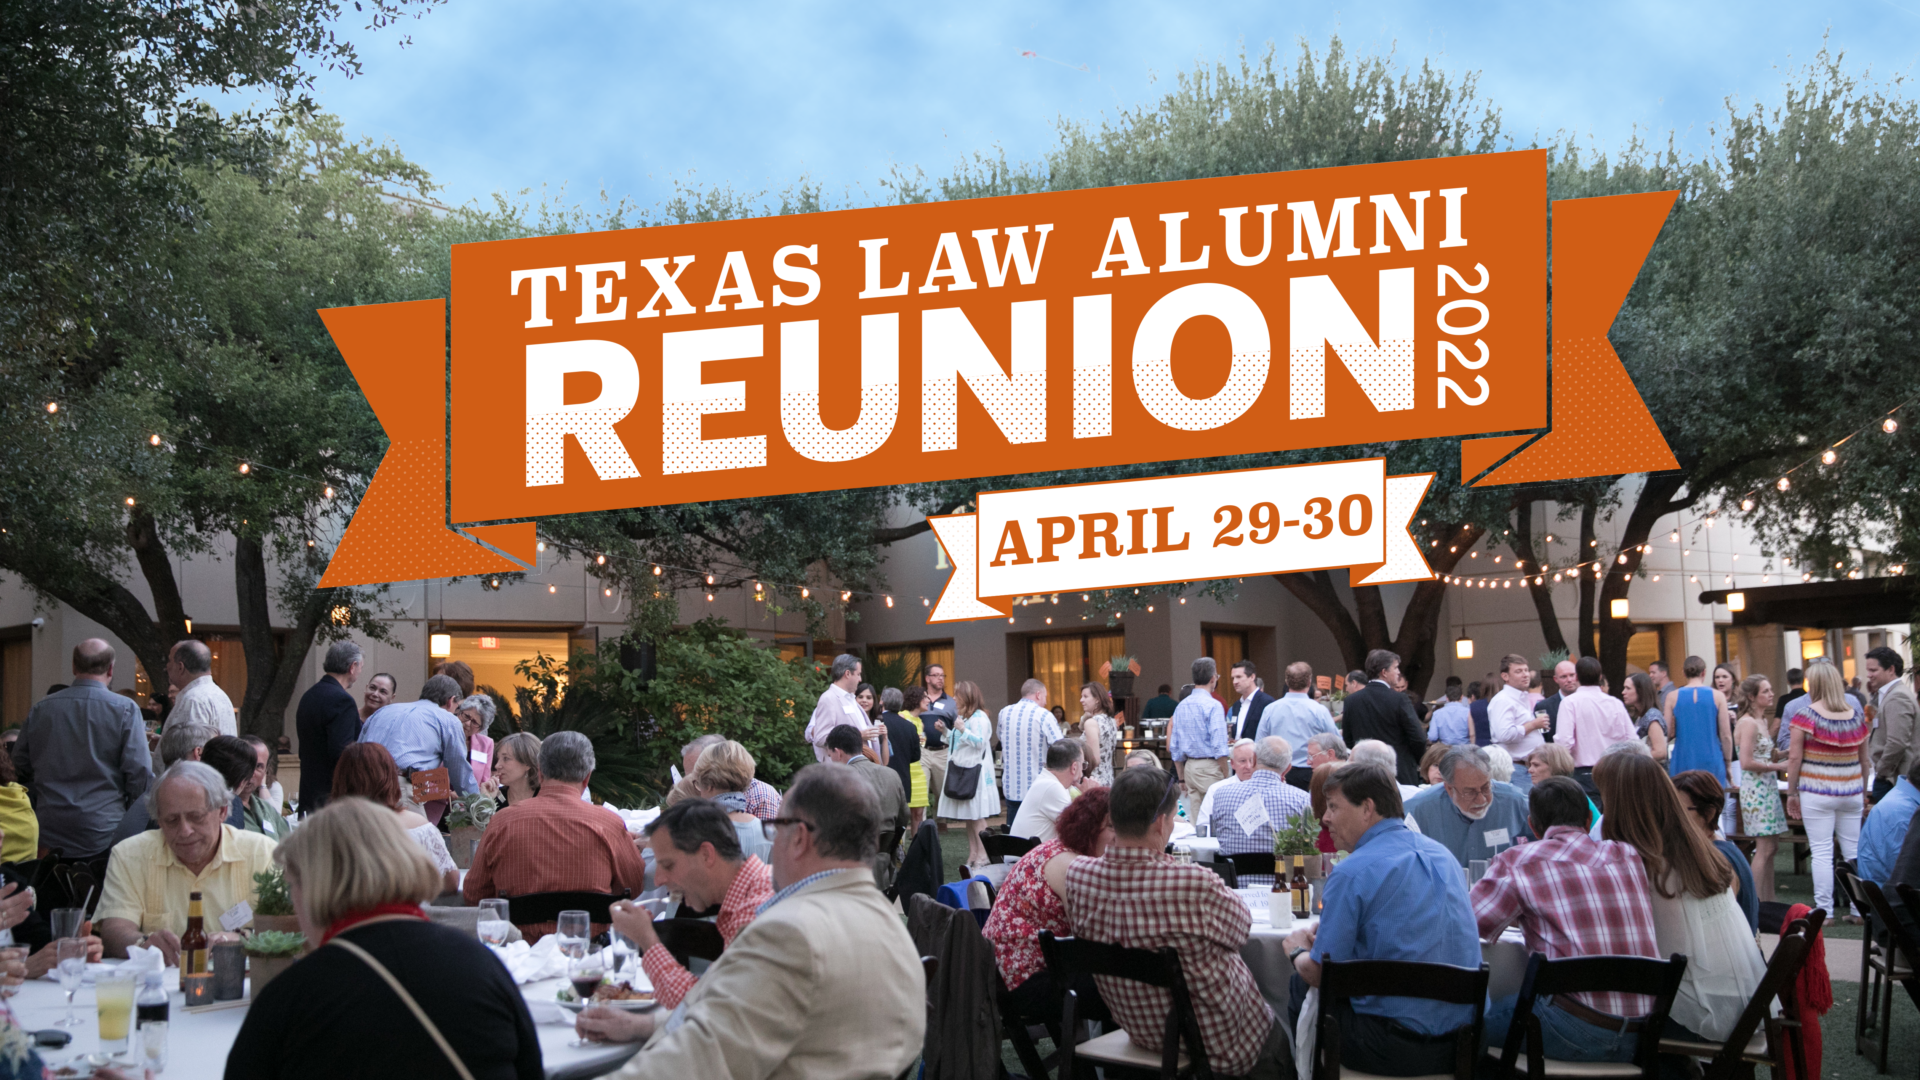 Gathering of alumni outside law school at reunion. Banner above says Texas Law Alumni Reunion 2022. April 29-30